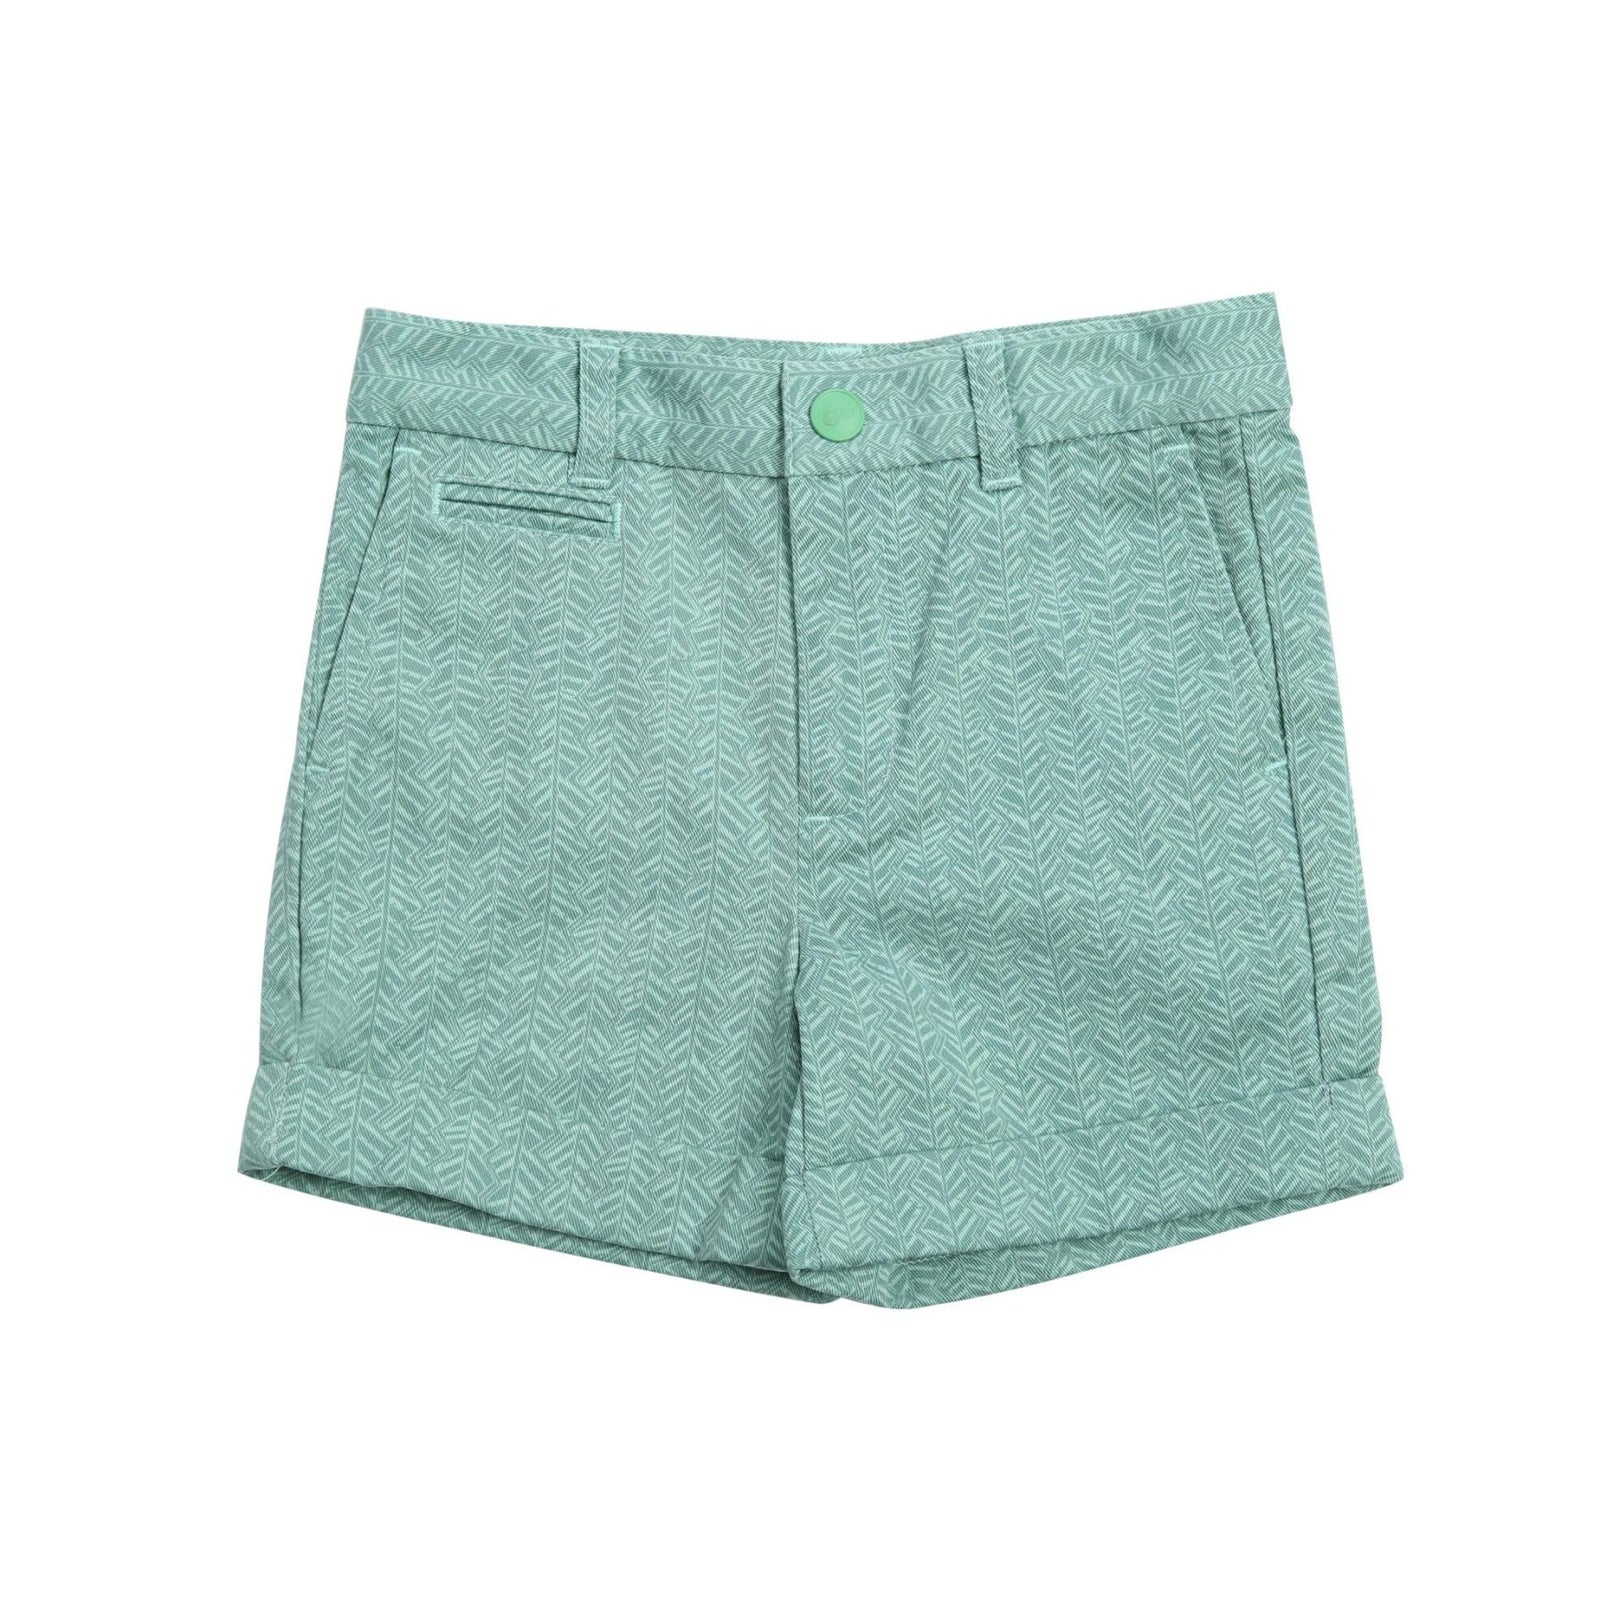 Fern Cuffed Cotton Short